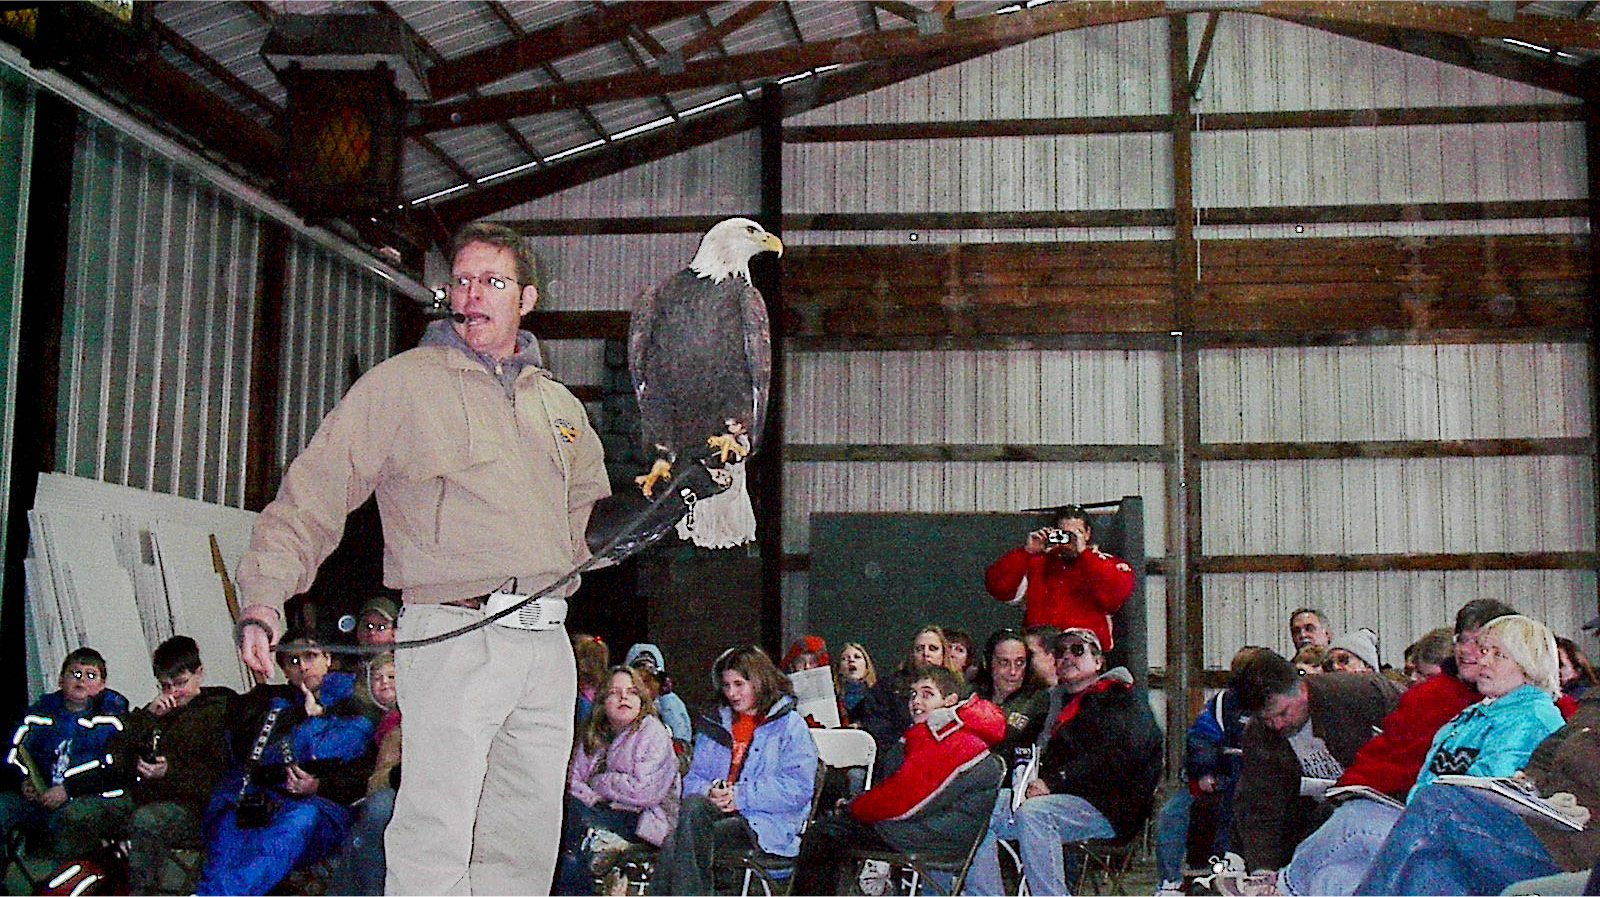 eagle-days-01252003-alr-4656.jpg